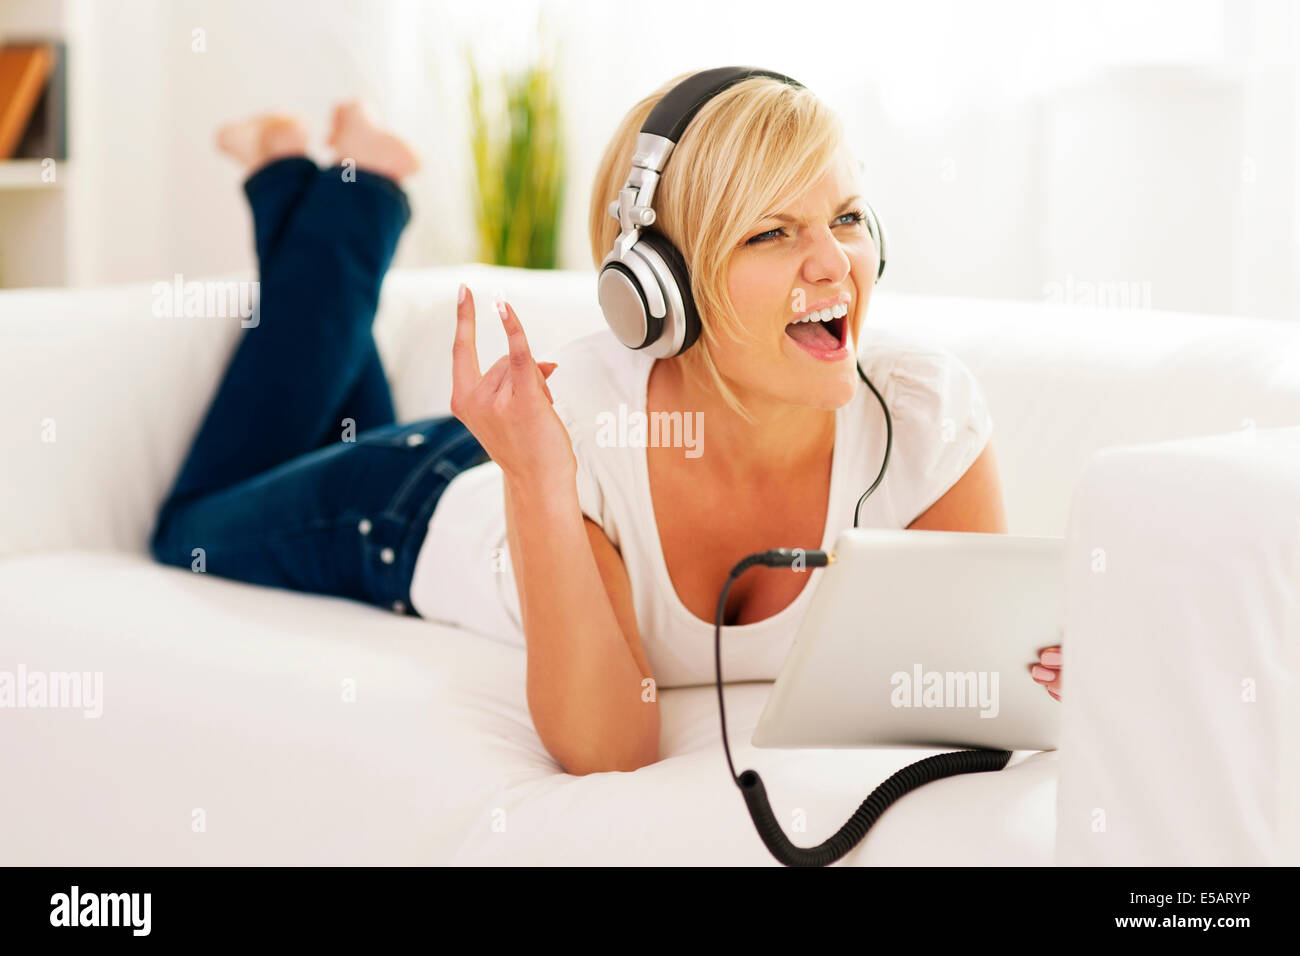 Woman listen to rock music at home Debica, Poland - Stock Image